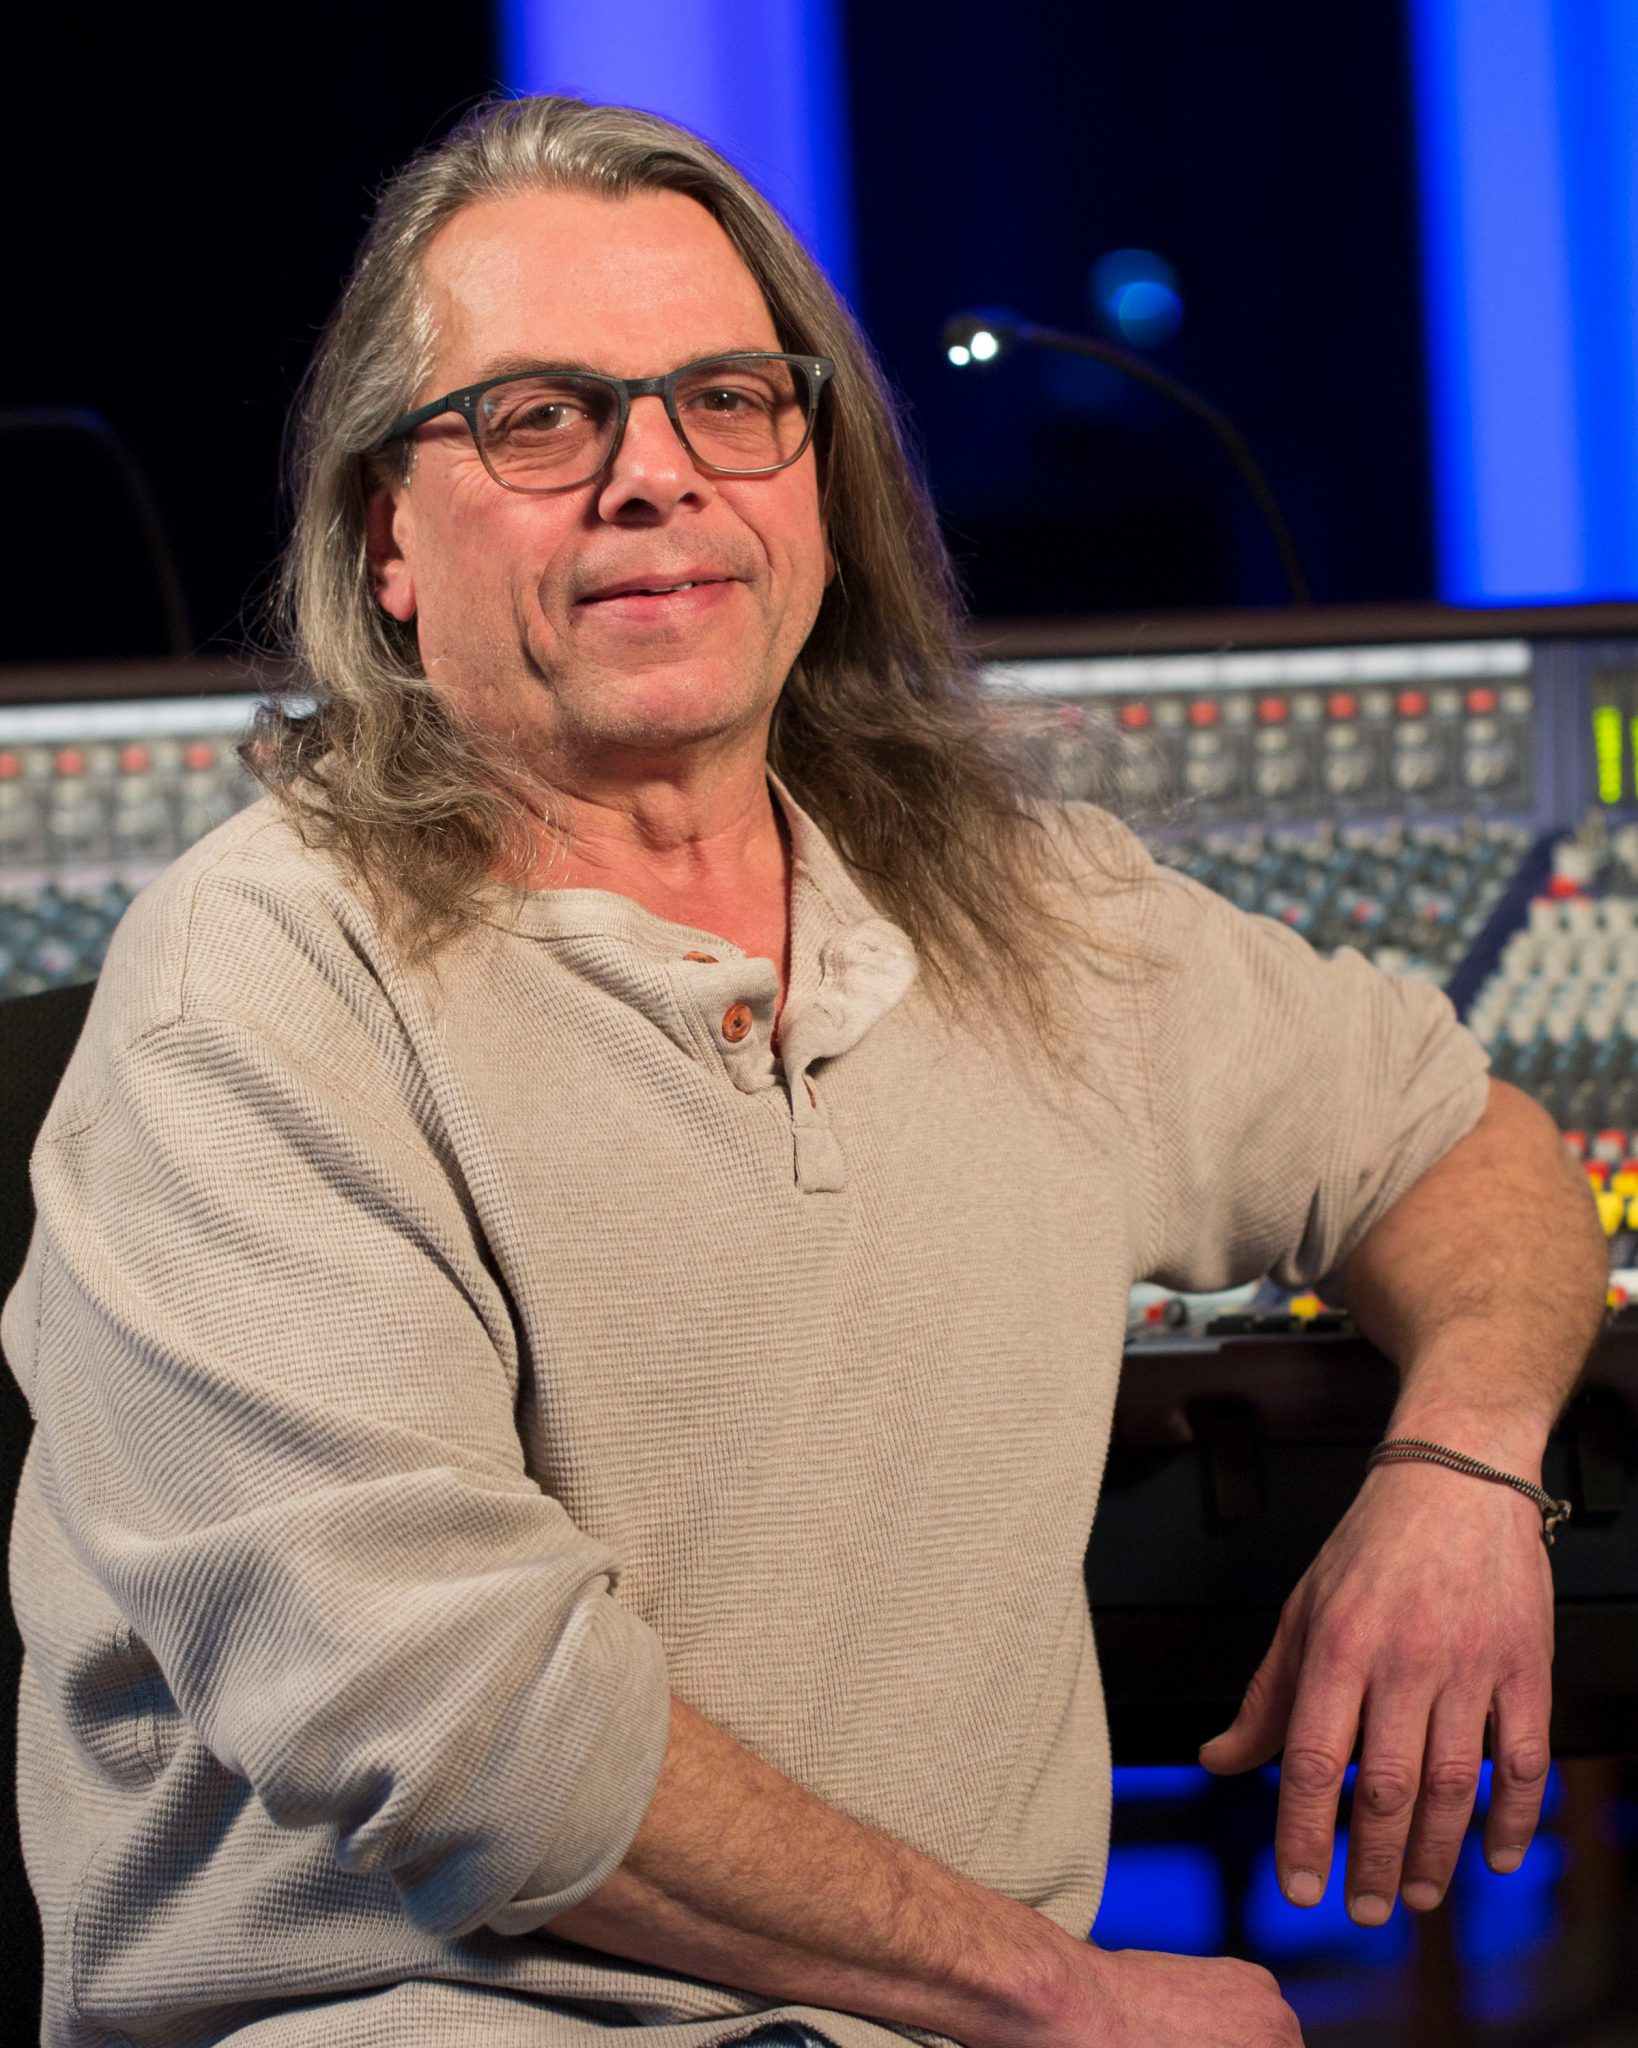 IPR Live Sound and Production Program Chair Peter Greenlund